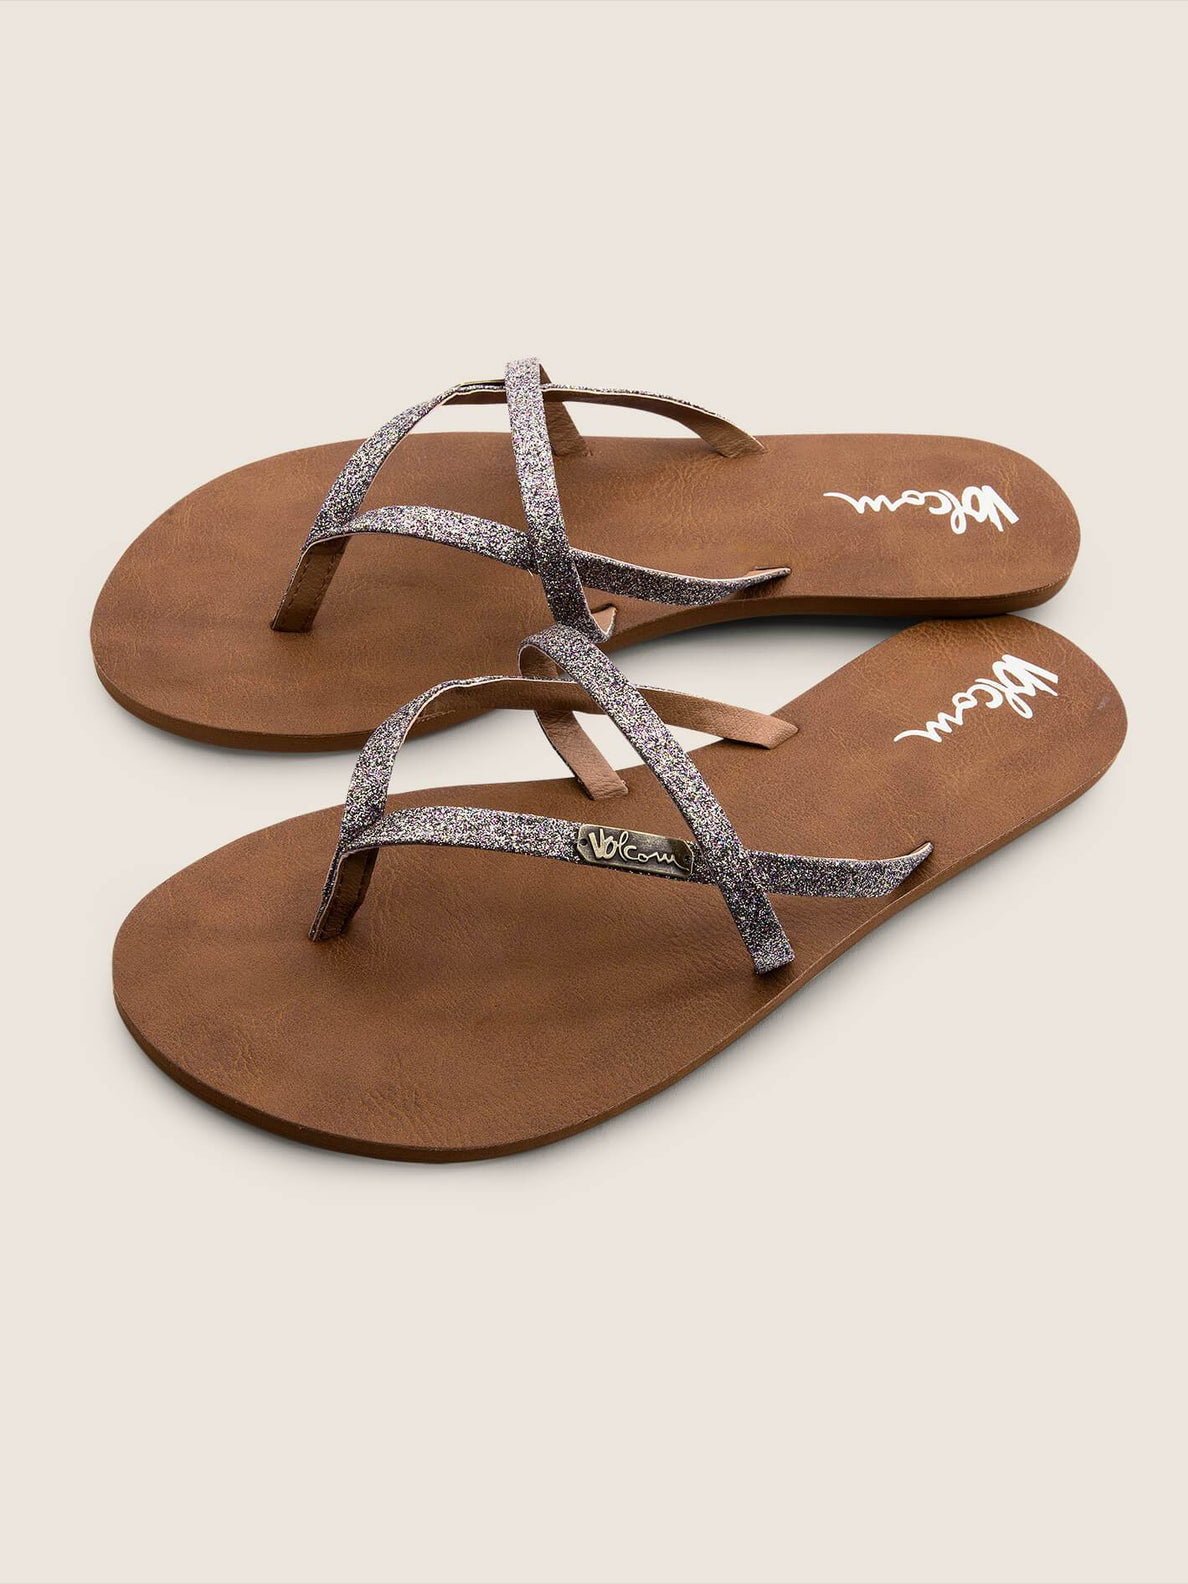 All Night Long Sandals In Multi, Front View